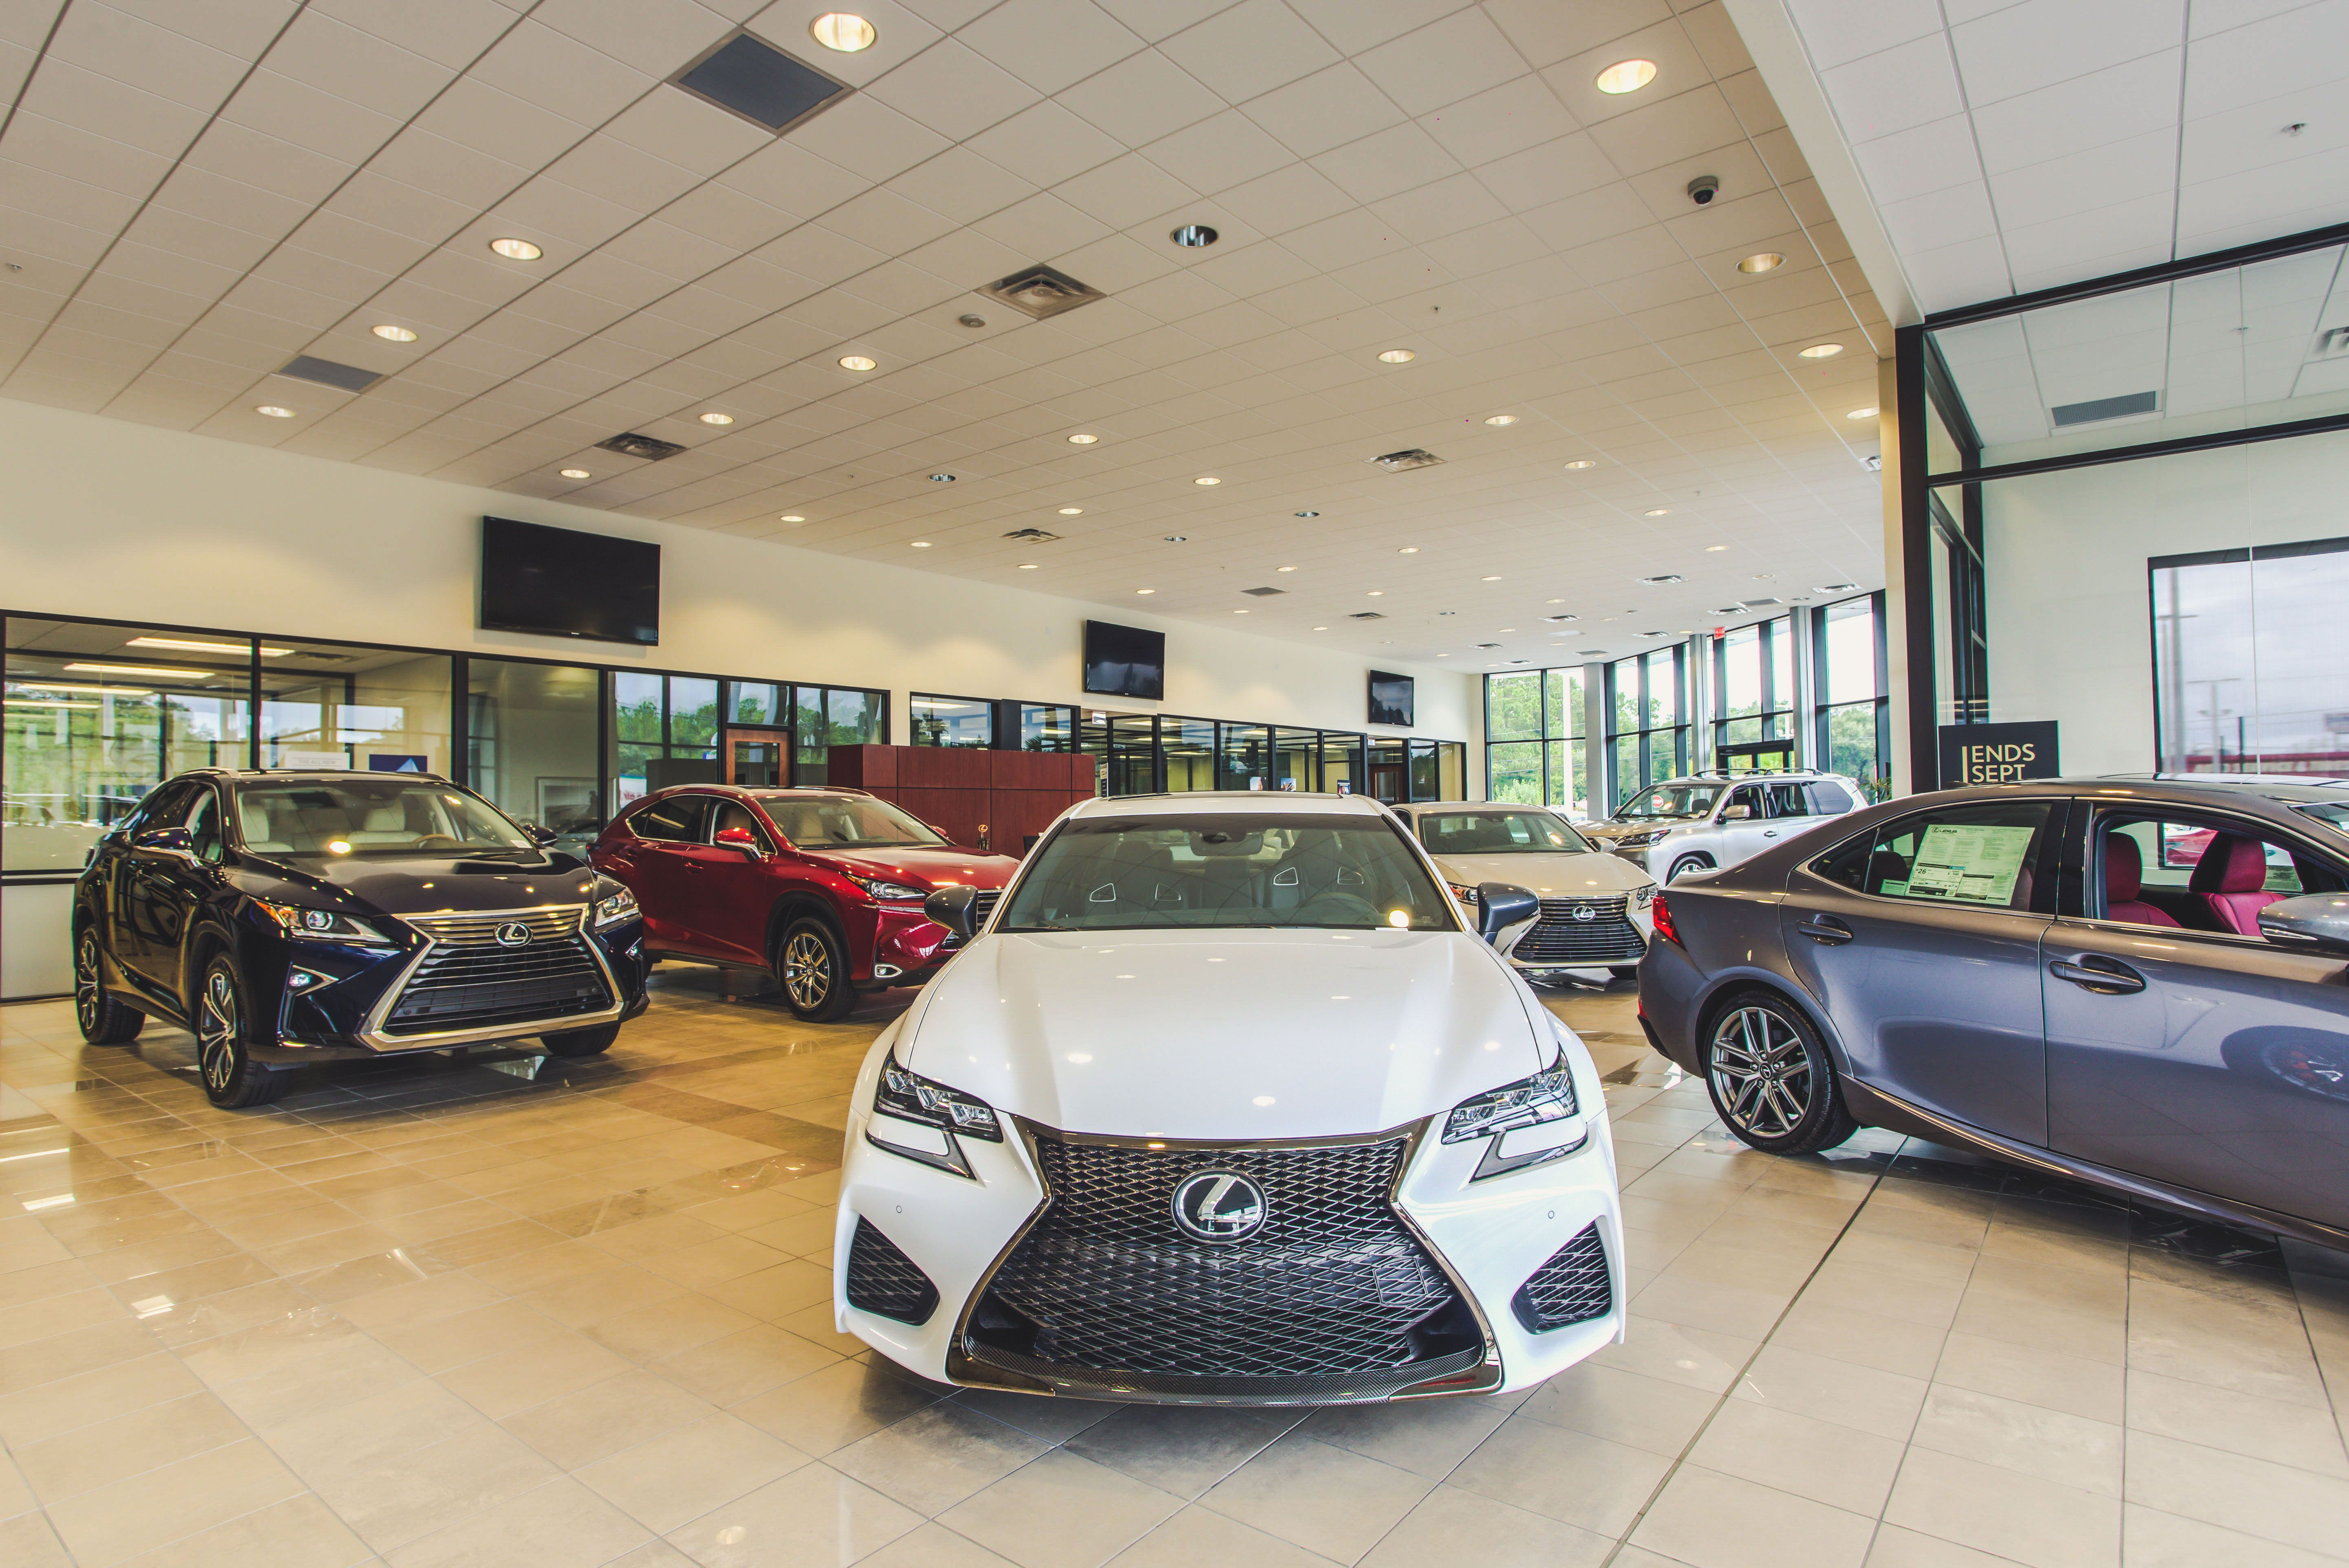 Our Mission Is To Make Every Customer A Customer For Life By Consistently Providing World Class Services Superb Customer Care Lexus Lexus Dealership New Lexus